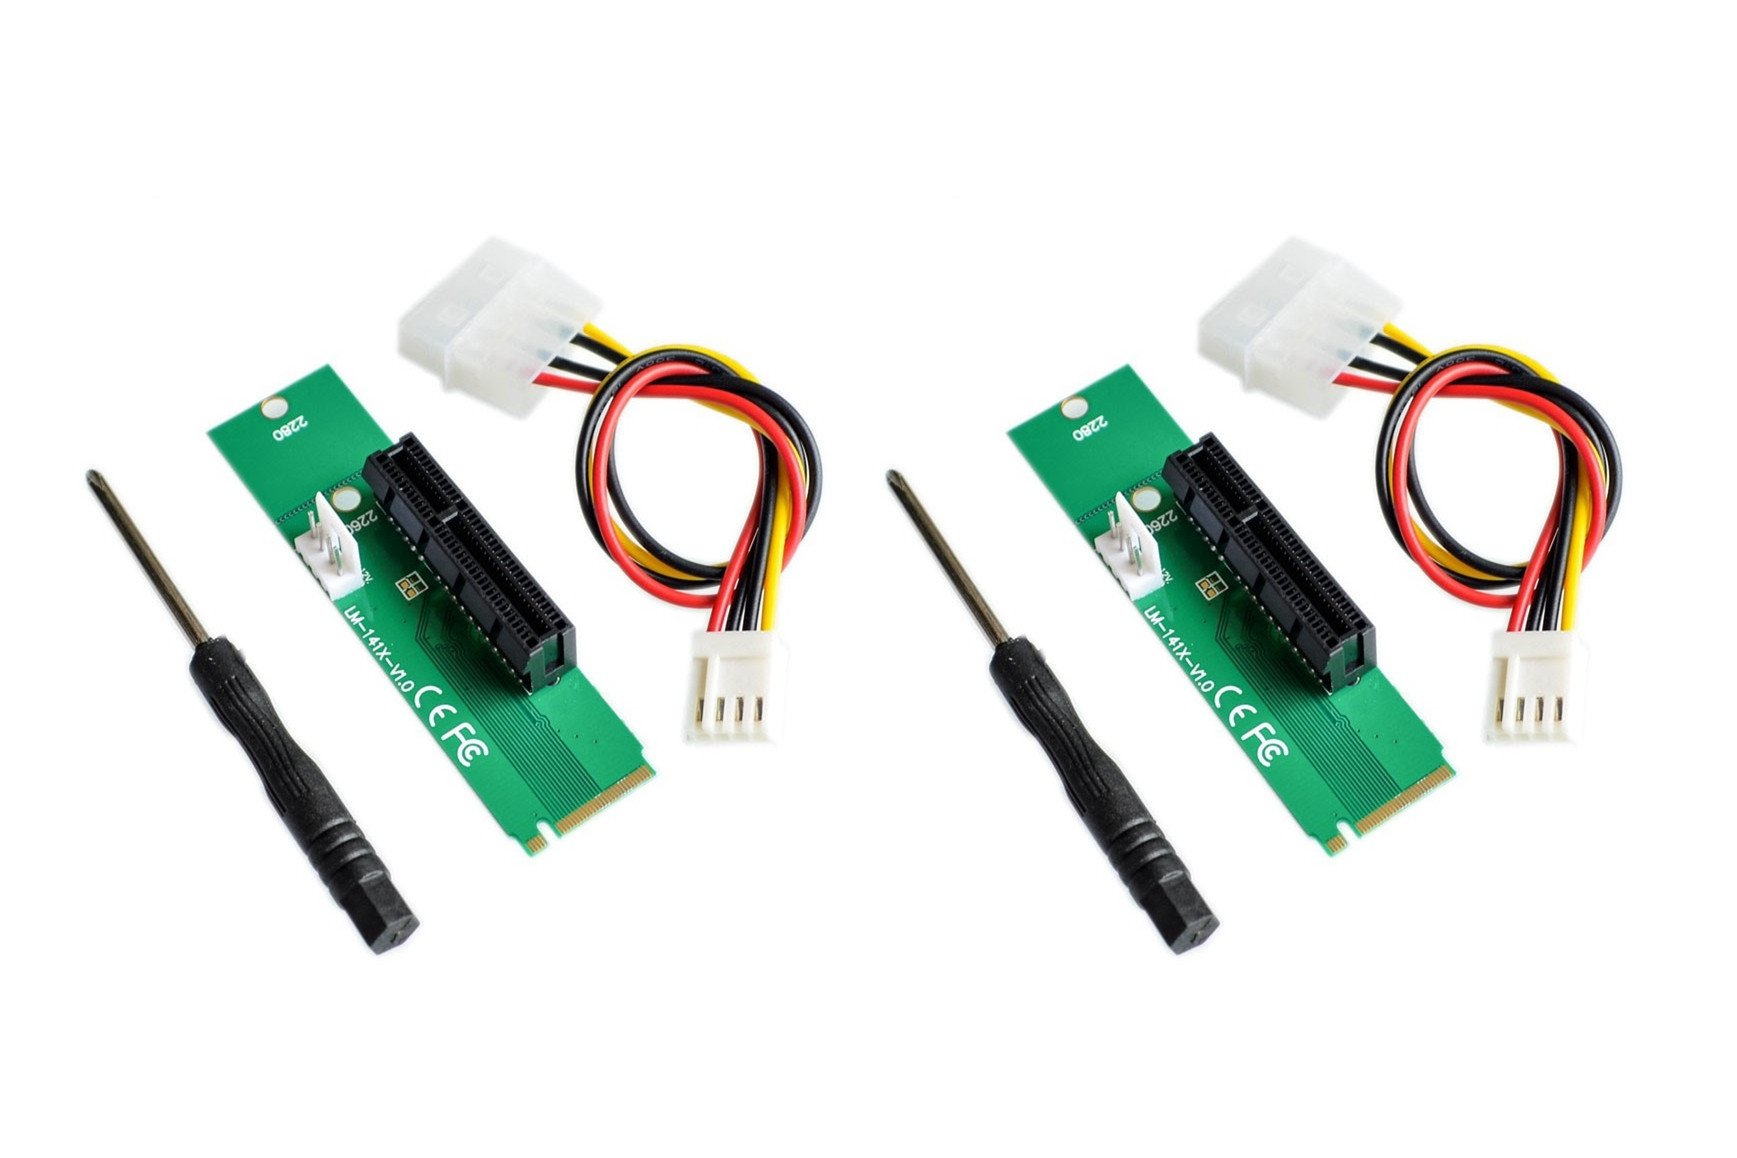 NGFF M.2 to PCI-E PCI Express 4x 1x Slot Riser Card Adapter M.2 Key-M Adapter Converter with 4 PIN Power Cable - 2Pack by NOYITO (Image #1)